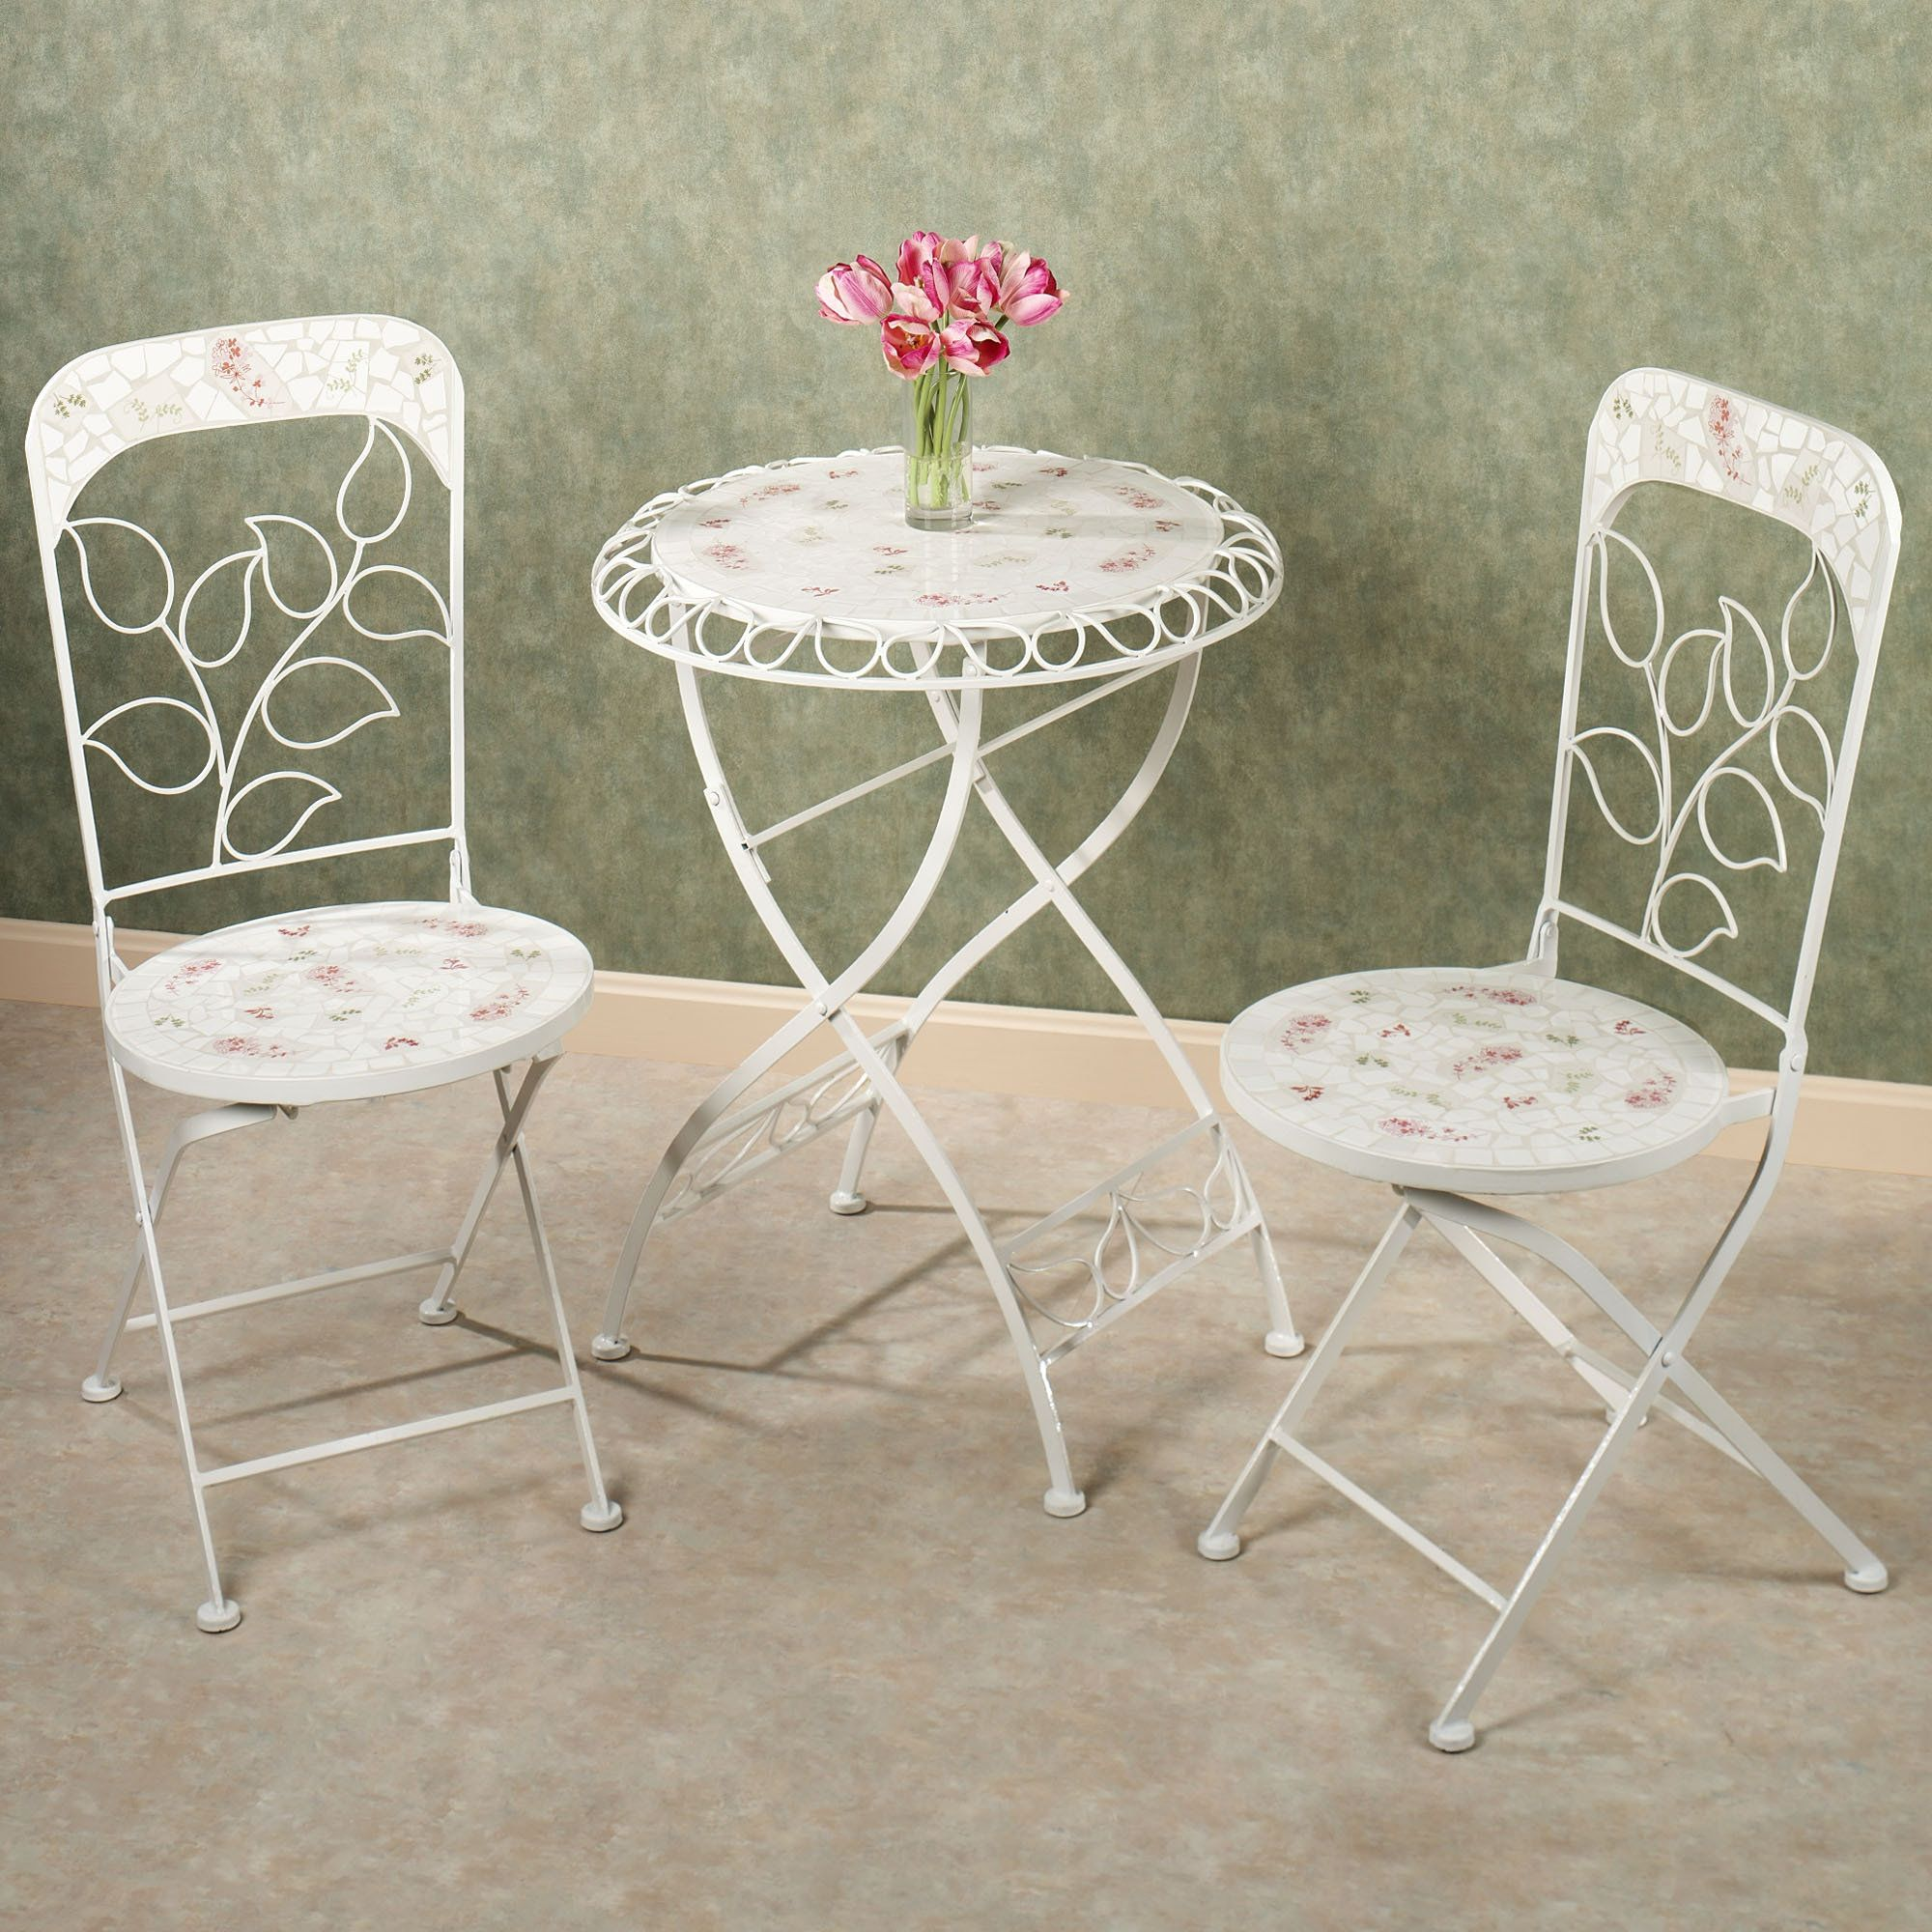 Abigails Garden Indoor Outdoor Metal Bistro Furniture | Tile design ...